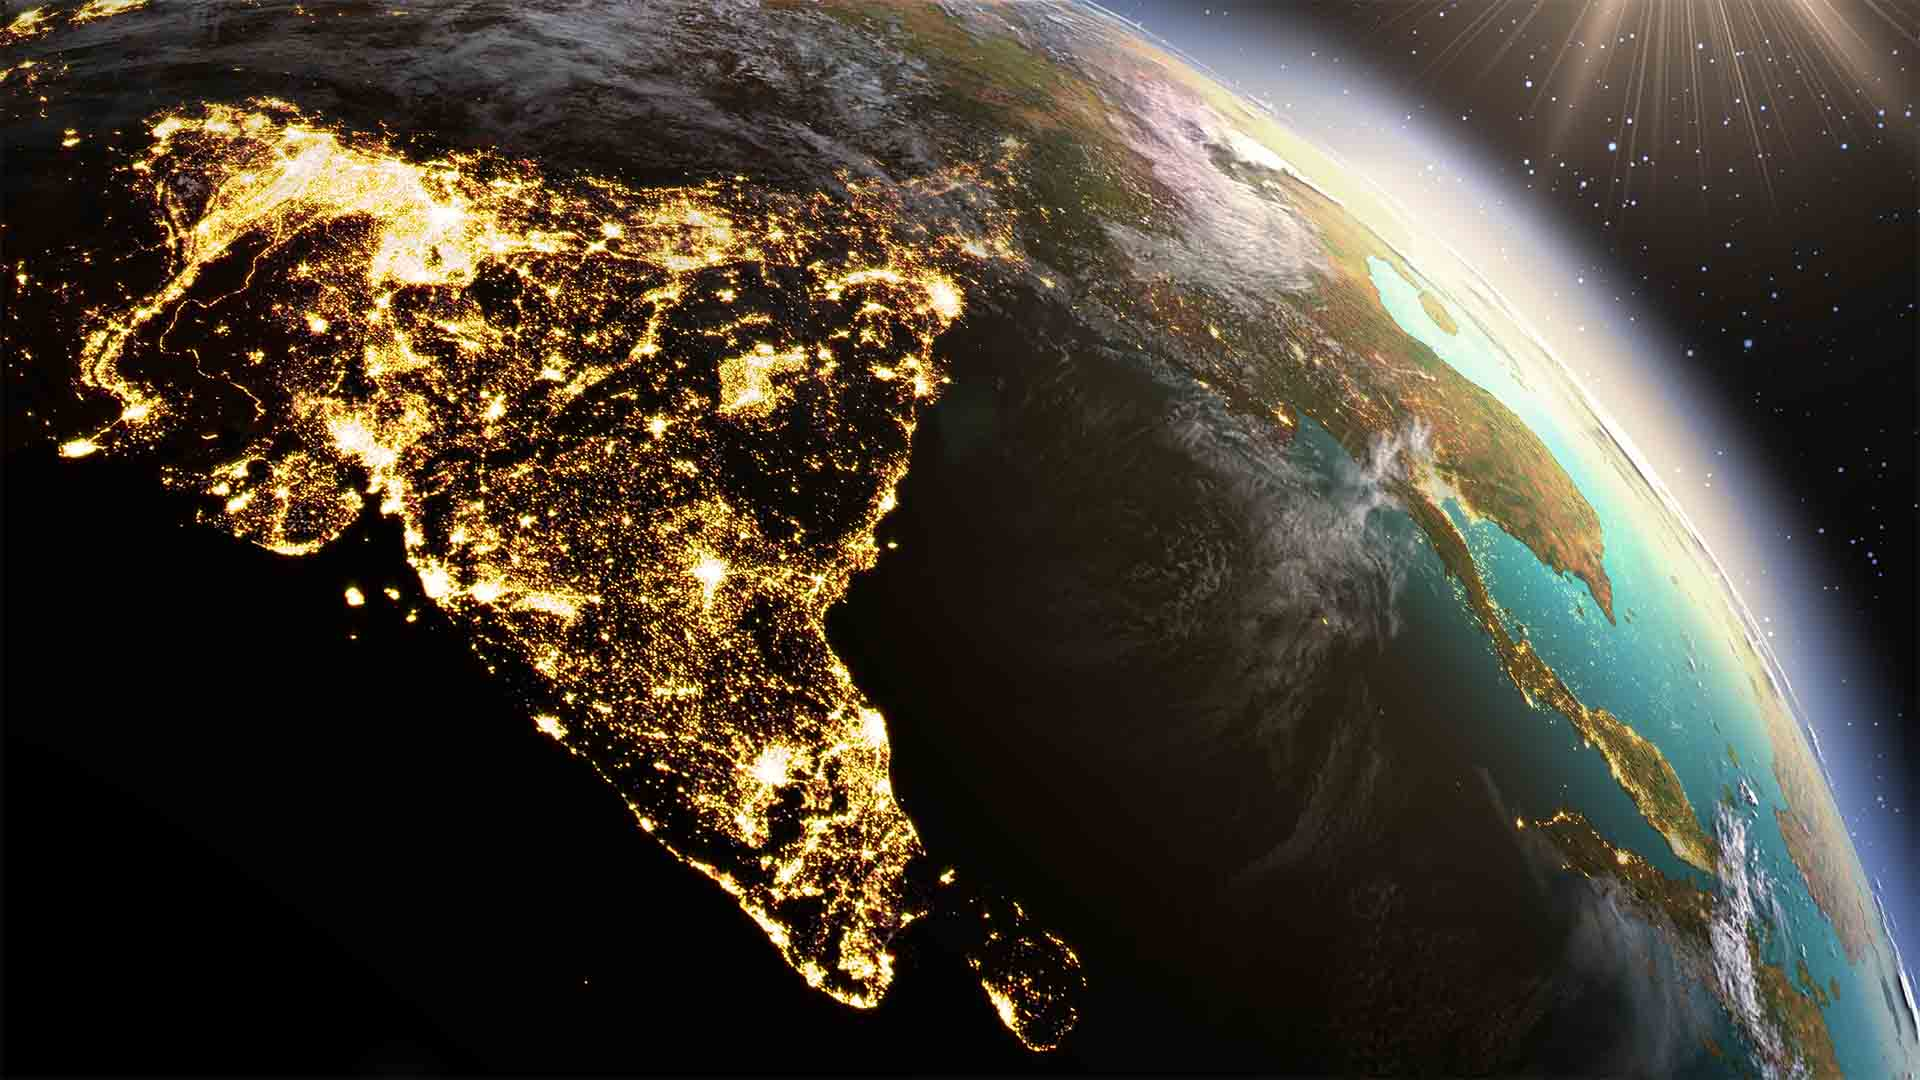 Colliers International forecasts strong growth in Asia Pacific